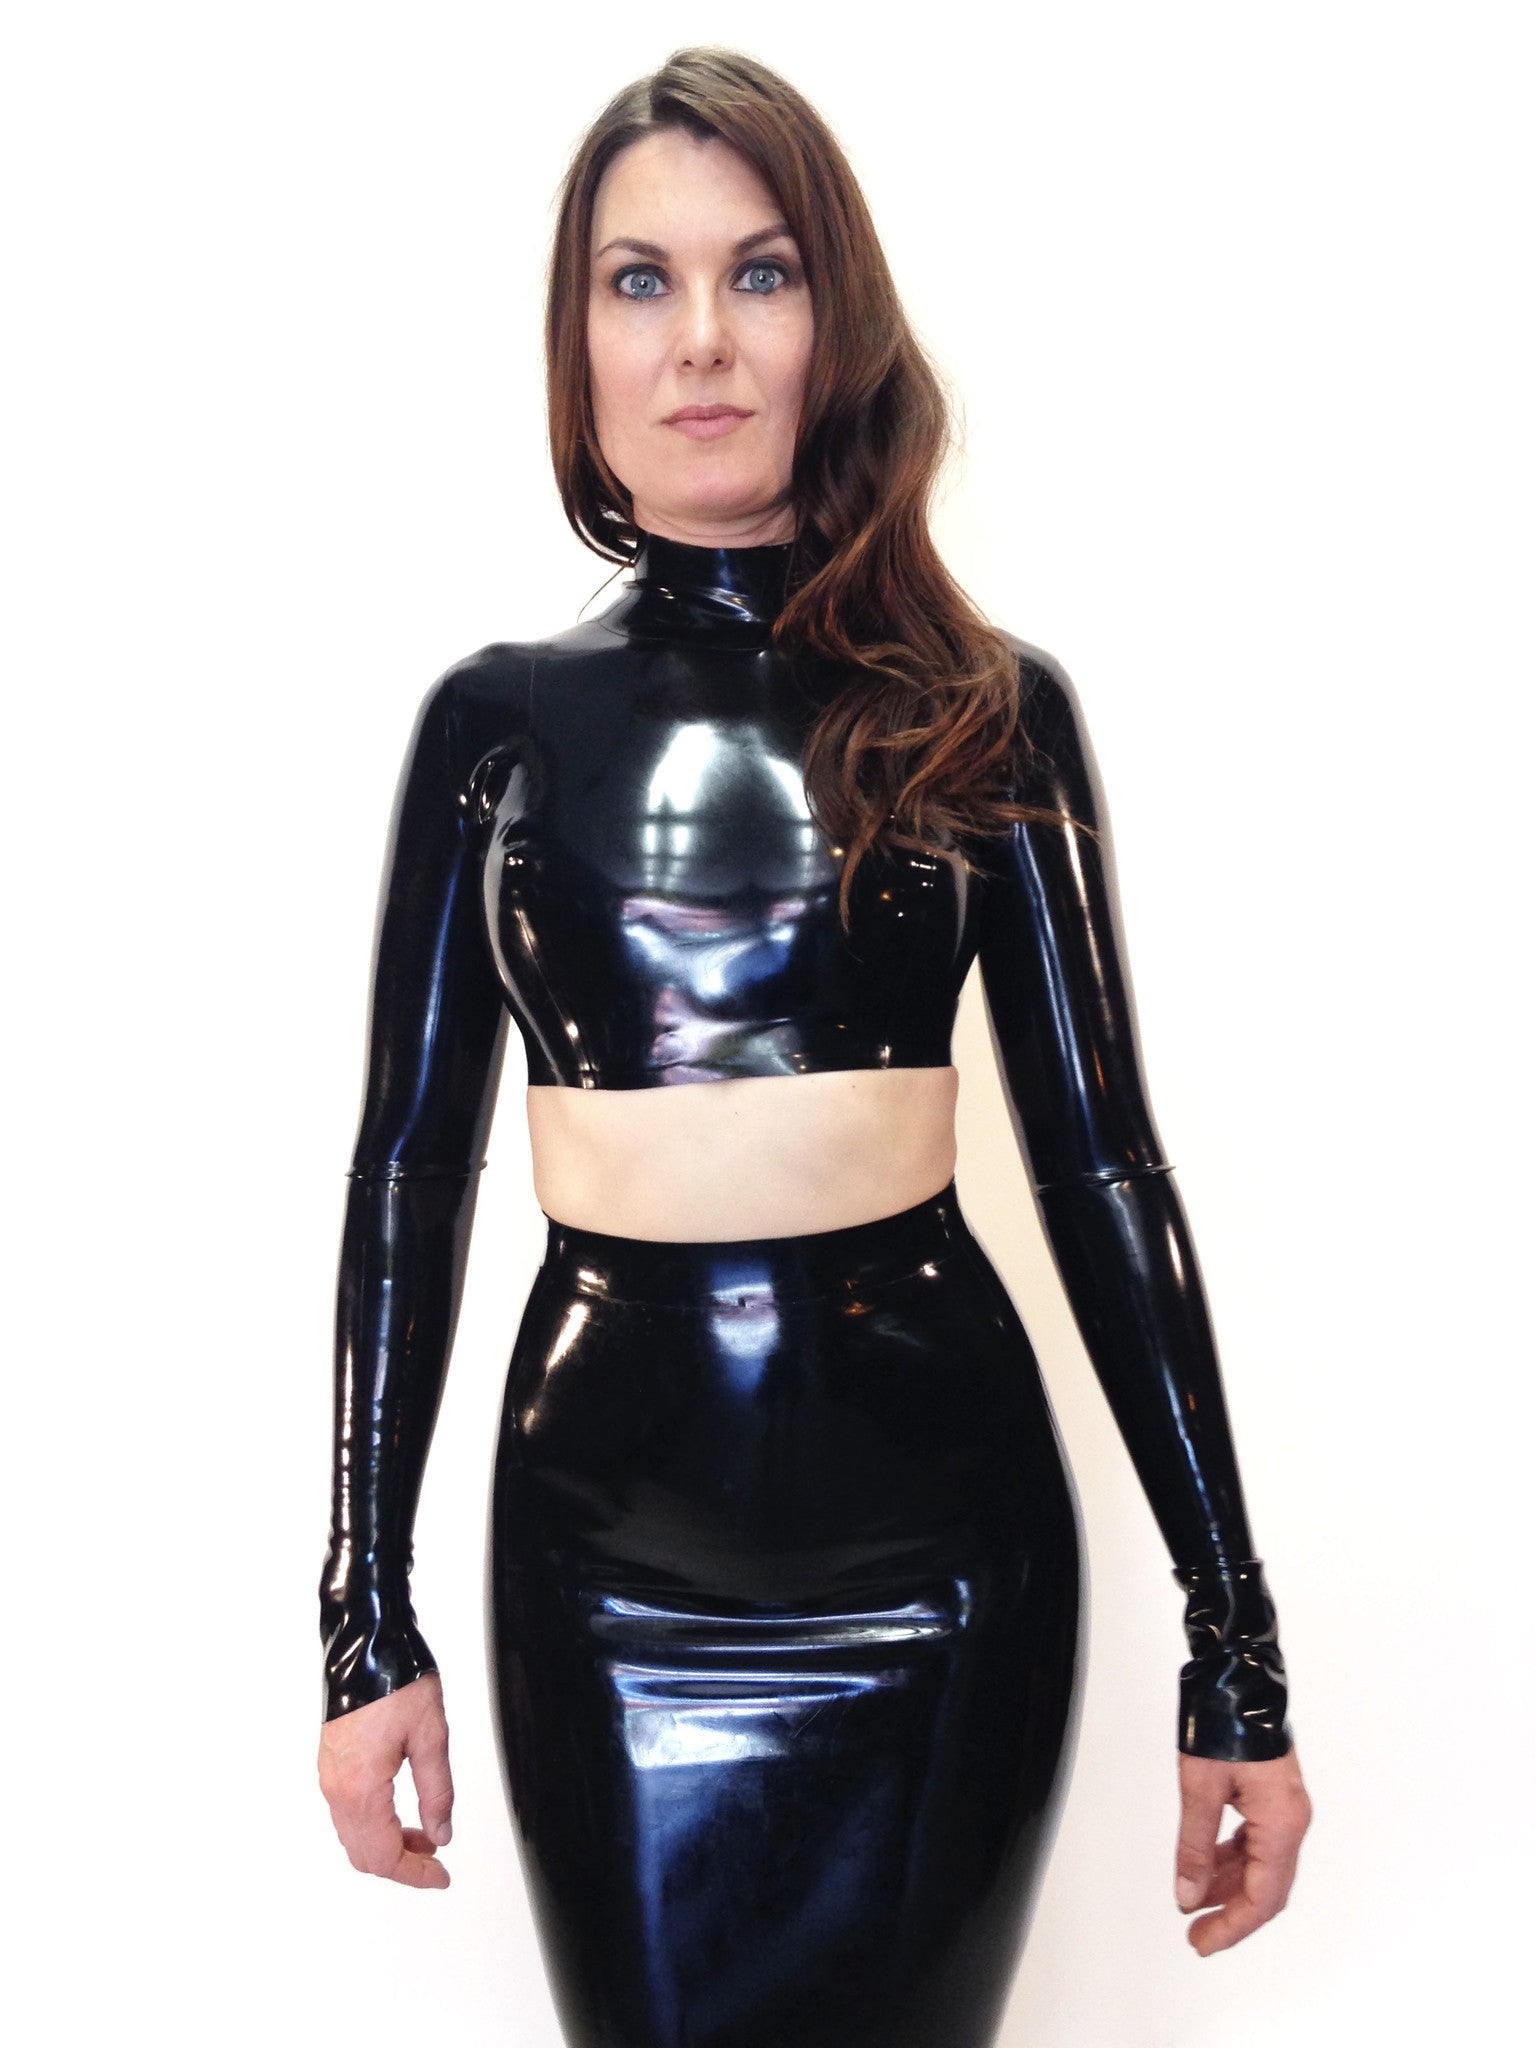 long sleeve crop top jane doe latex